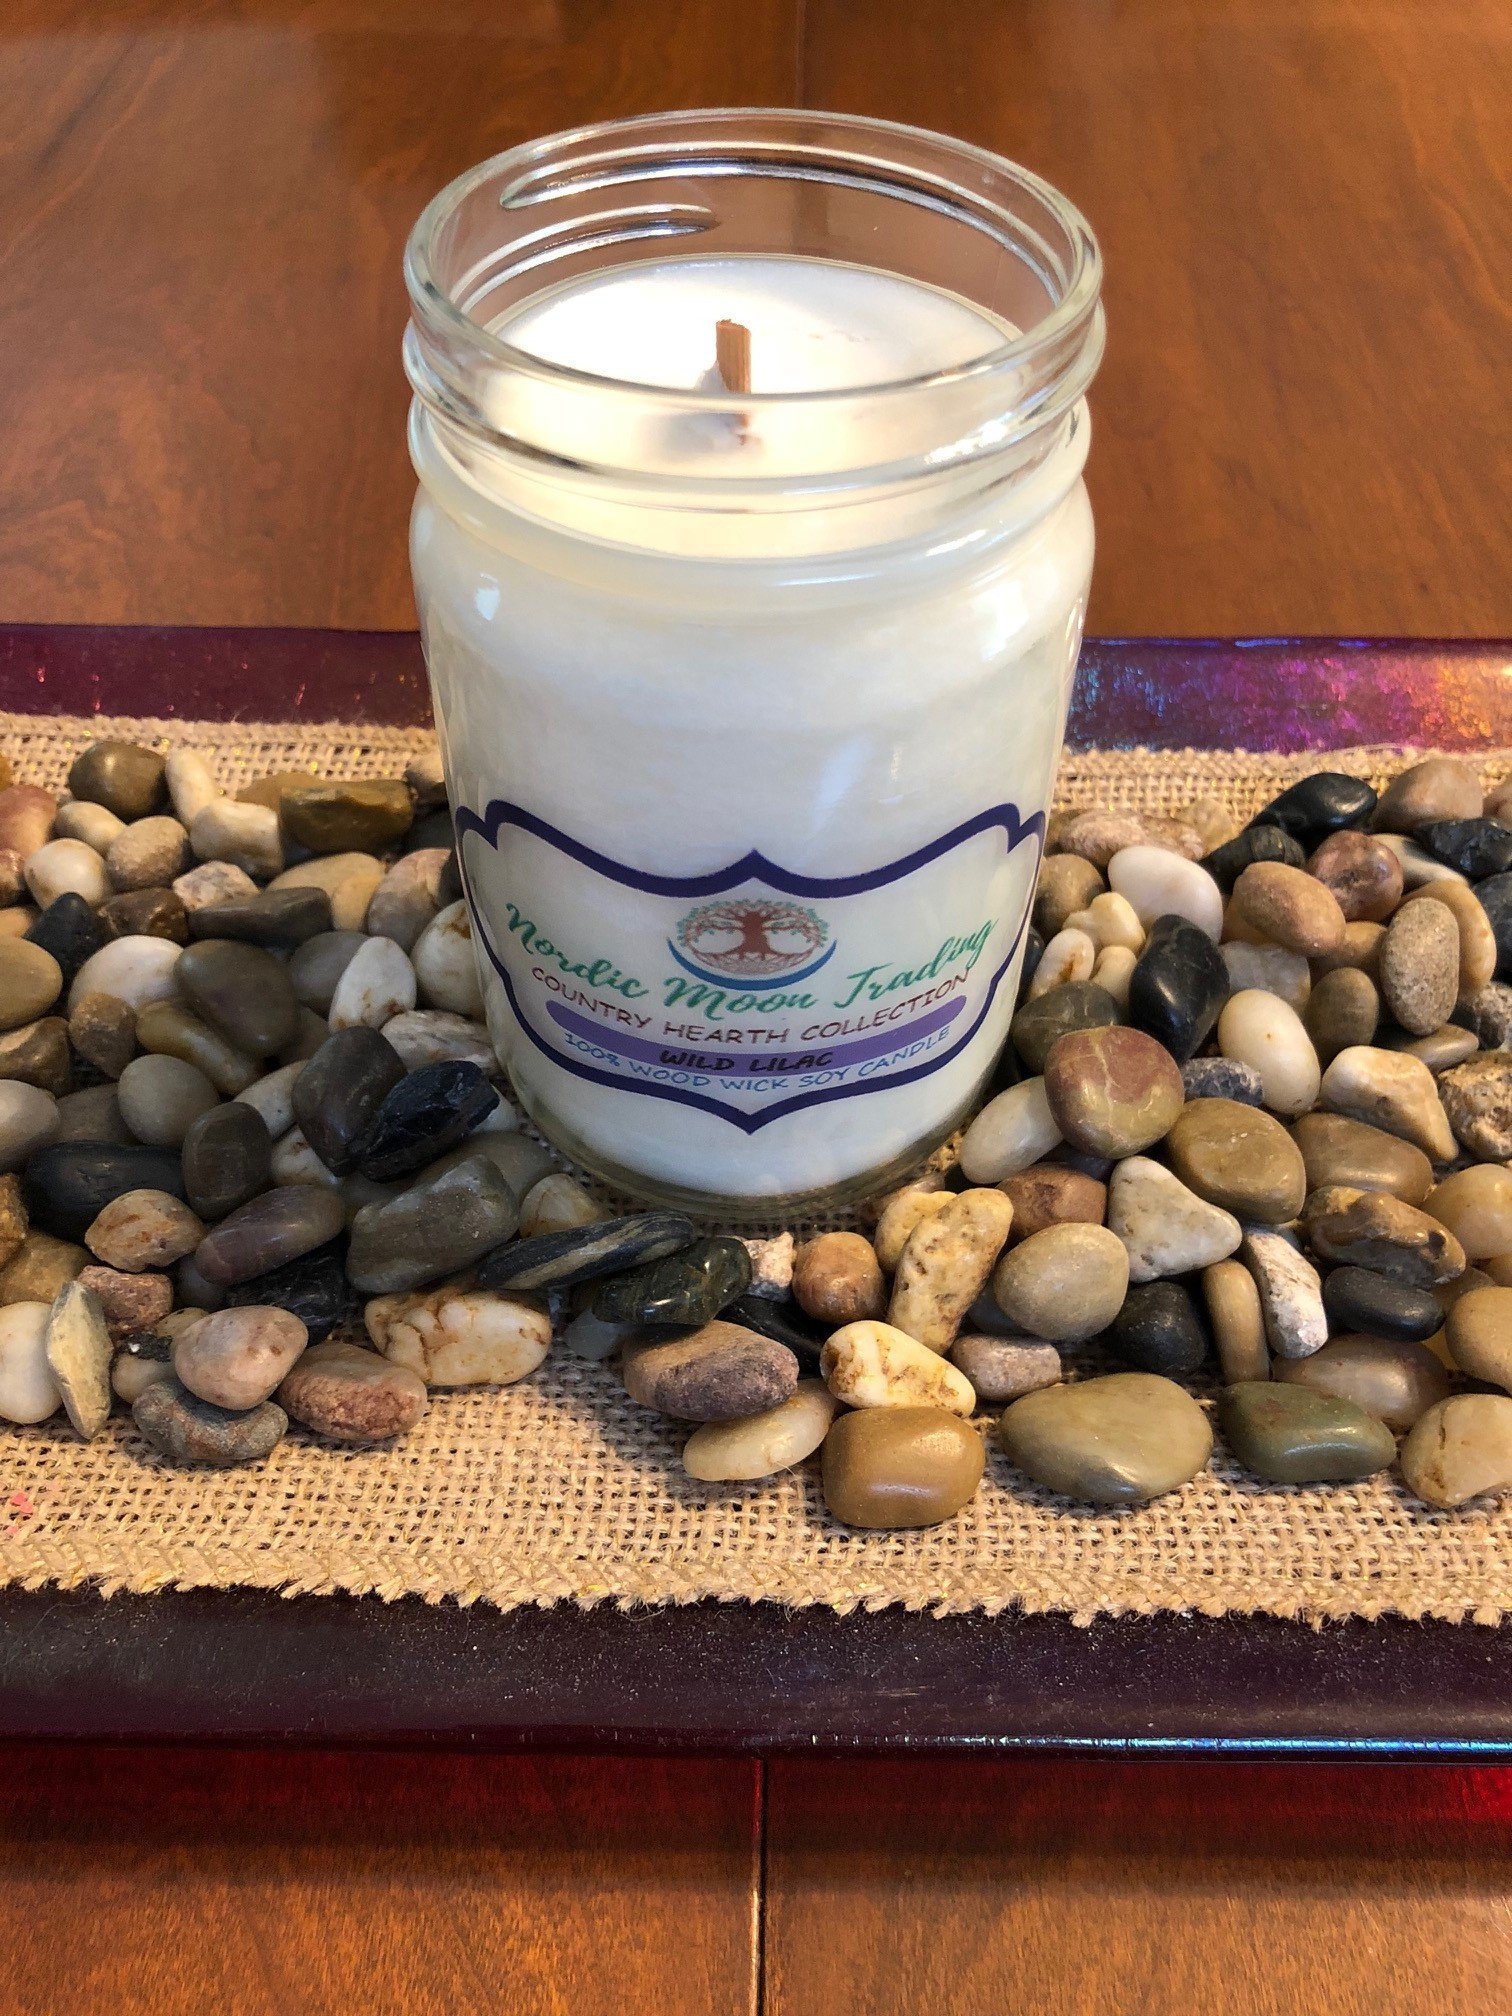 Nordic Moon Trading 100% Natural Soy Wax, Wood Wick Scented Candle 12 oz Mason Jar - Wild Lilac. Made in USA by Family Owned Business. 100 Hours of Burn Time. Clean Burning, No Black Soot. by Nordic Moon Trading (Image #2)